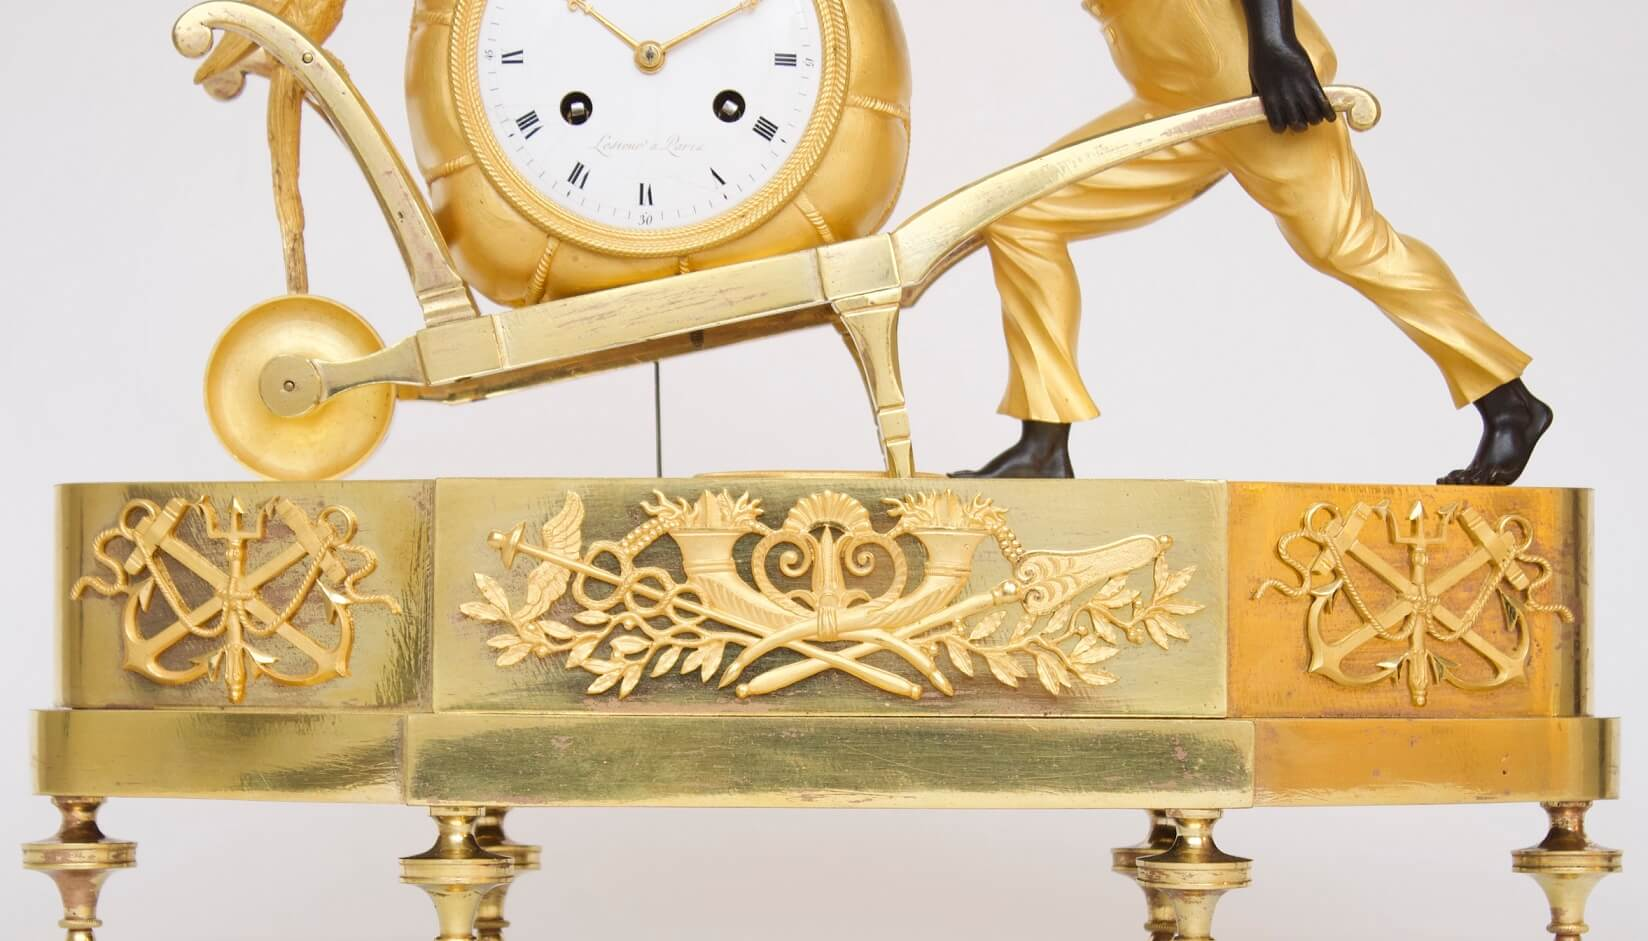 French-Empire-Directoire-ormolu-gilt-patinated-bronze-blackamoor-bon Sauvage-antique-mantel-clock-Deverberie-Lesieur